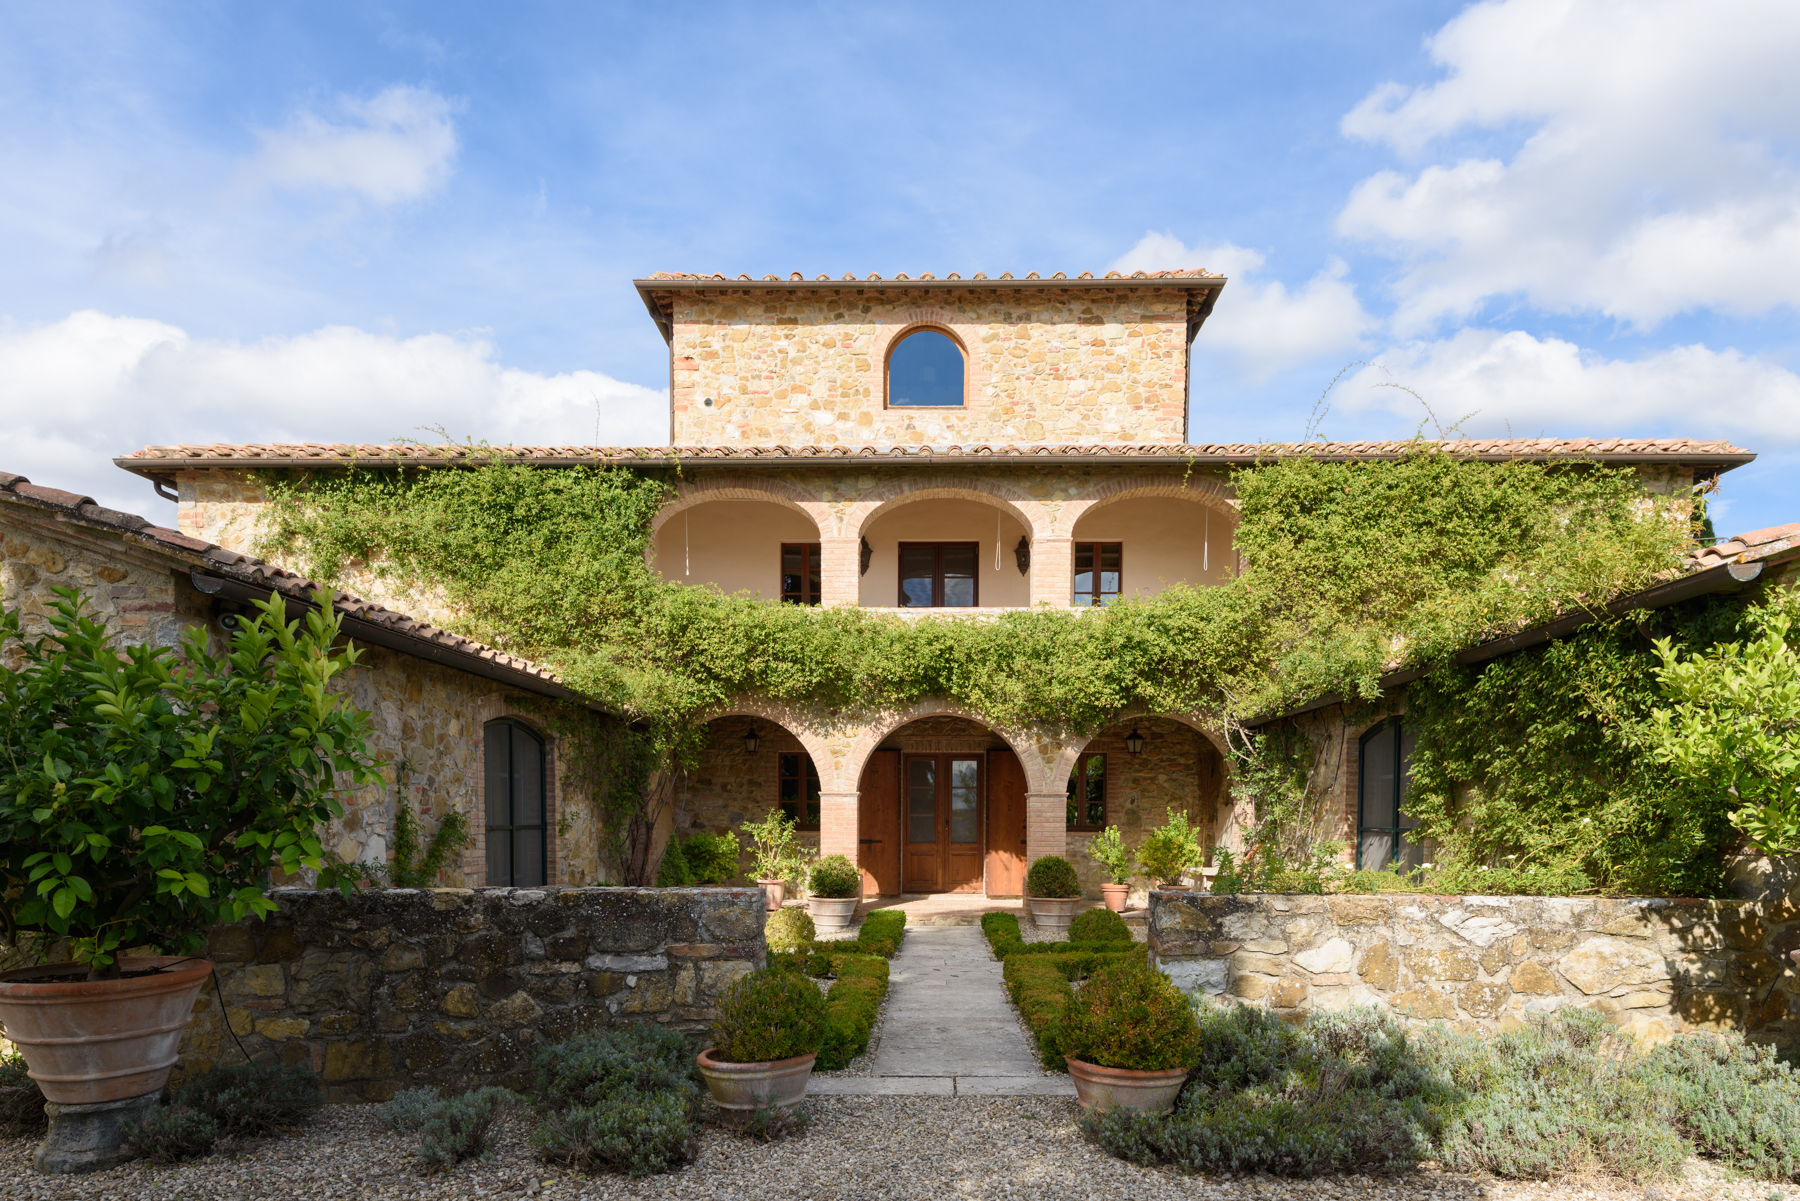 Single Family Home for Sale at Luxury Chianti country estate Castelnuovo Berardenga Siena, Siena 53019 Italy